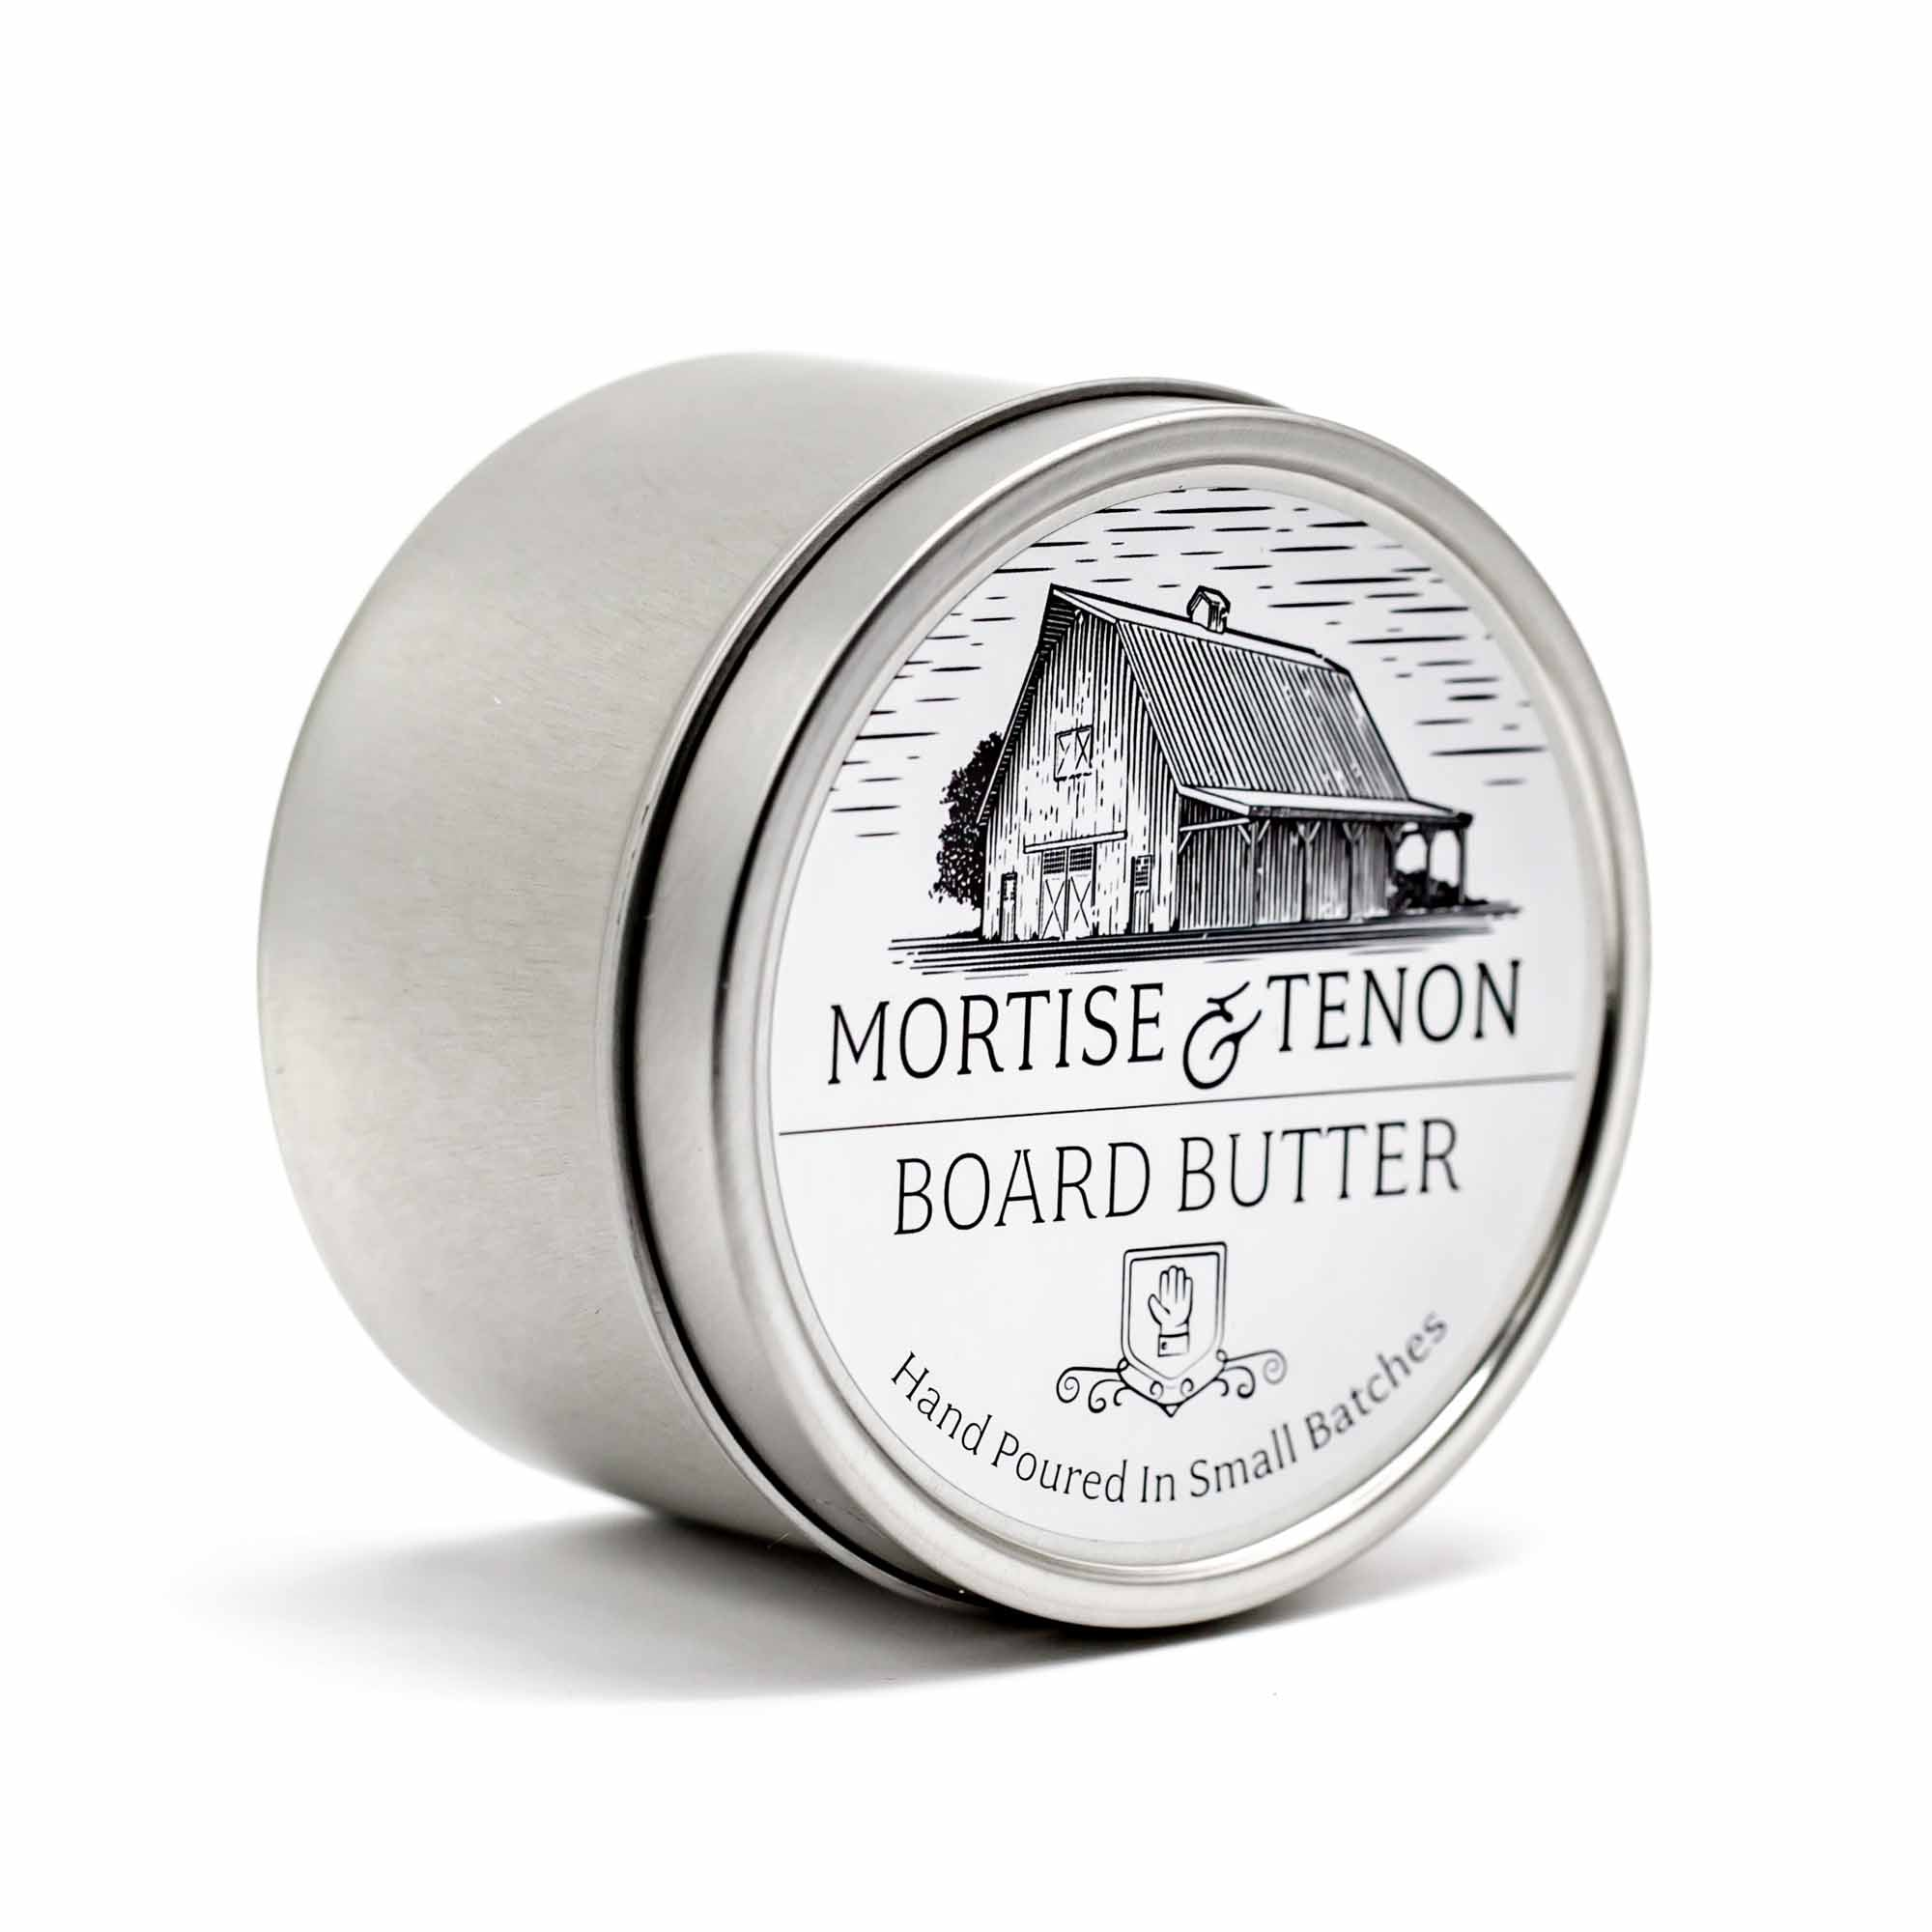 Mortise & Tenon Board Butter - Mortise And Tenon